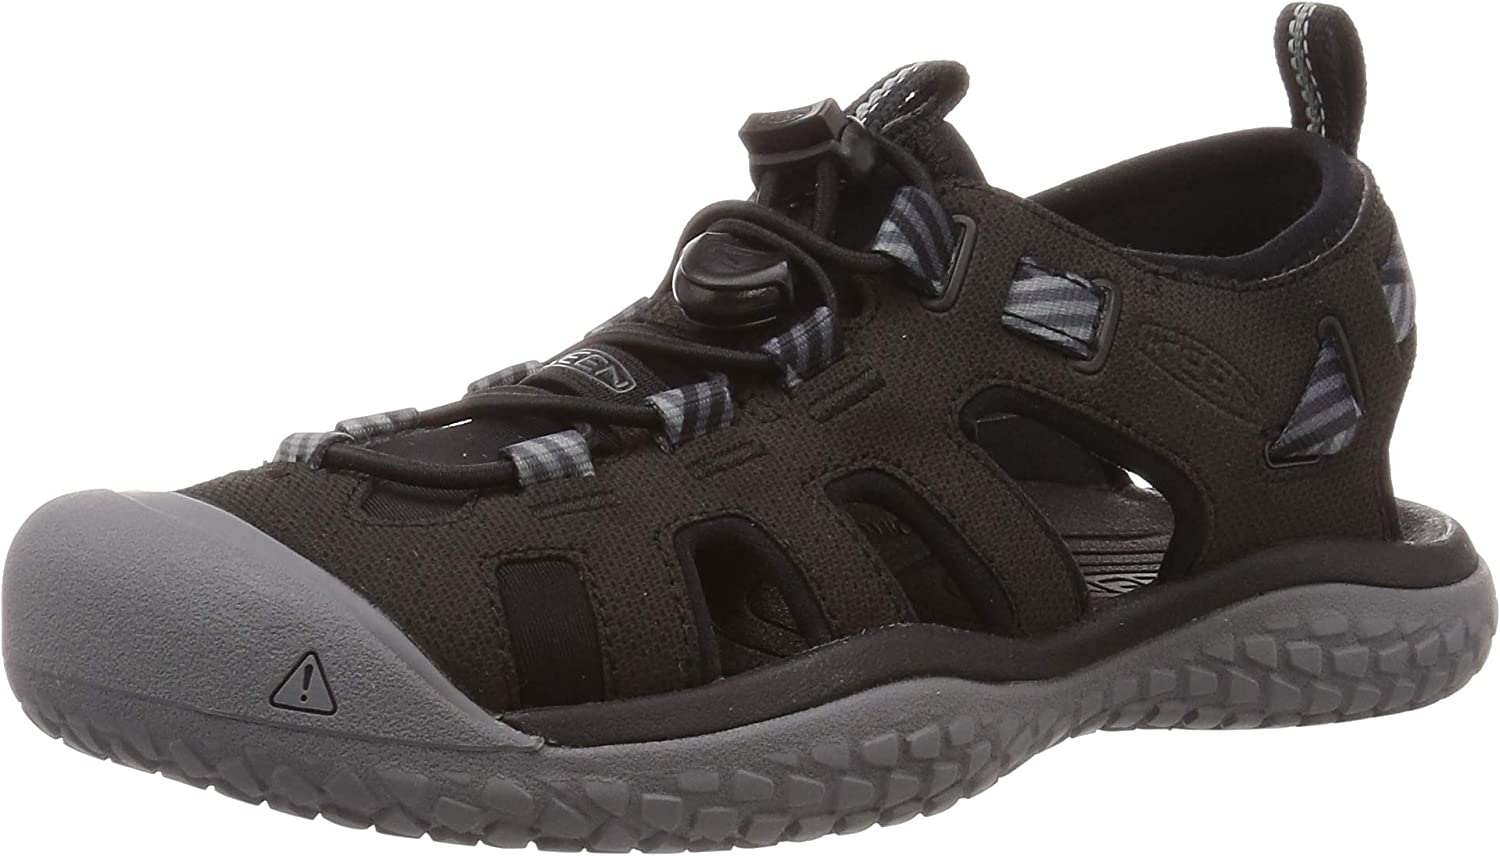 KEEN Women's SOLR High Performance Sandal Ranking TOP7 Closed Water Toe Sale Special Price Sport